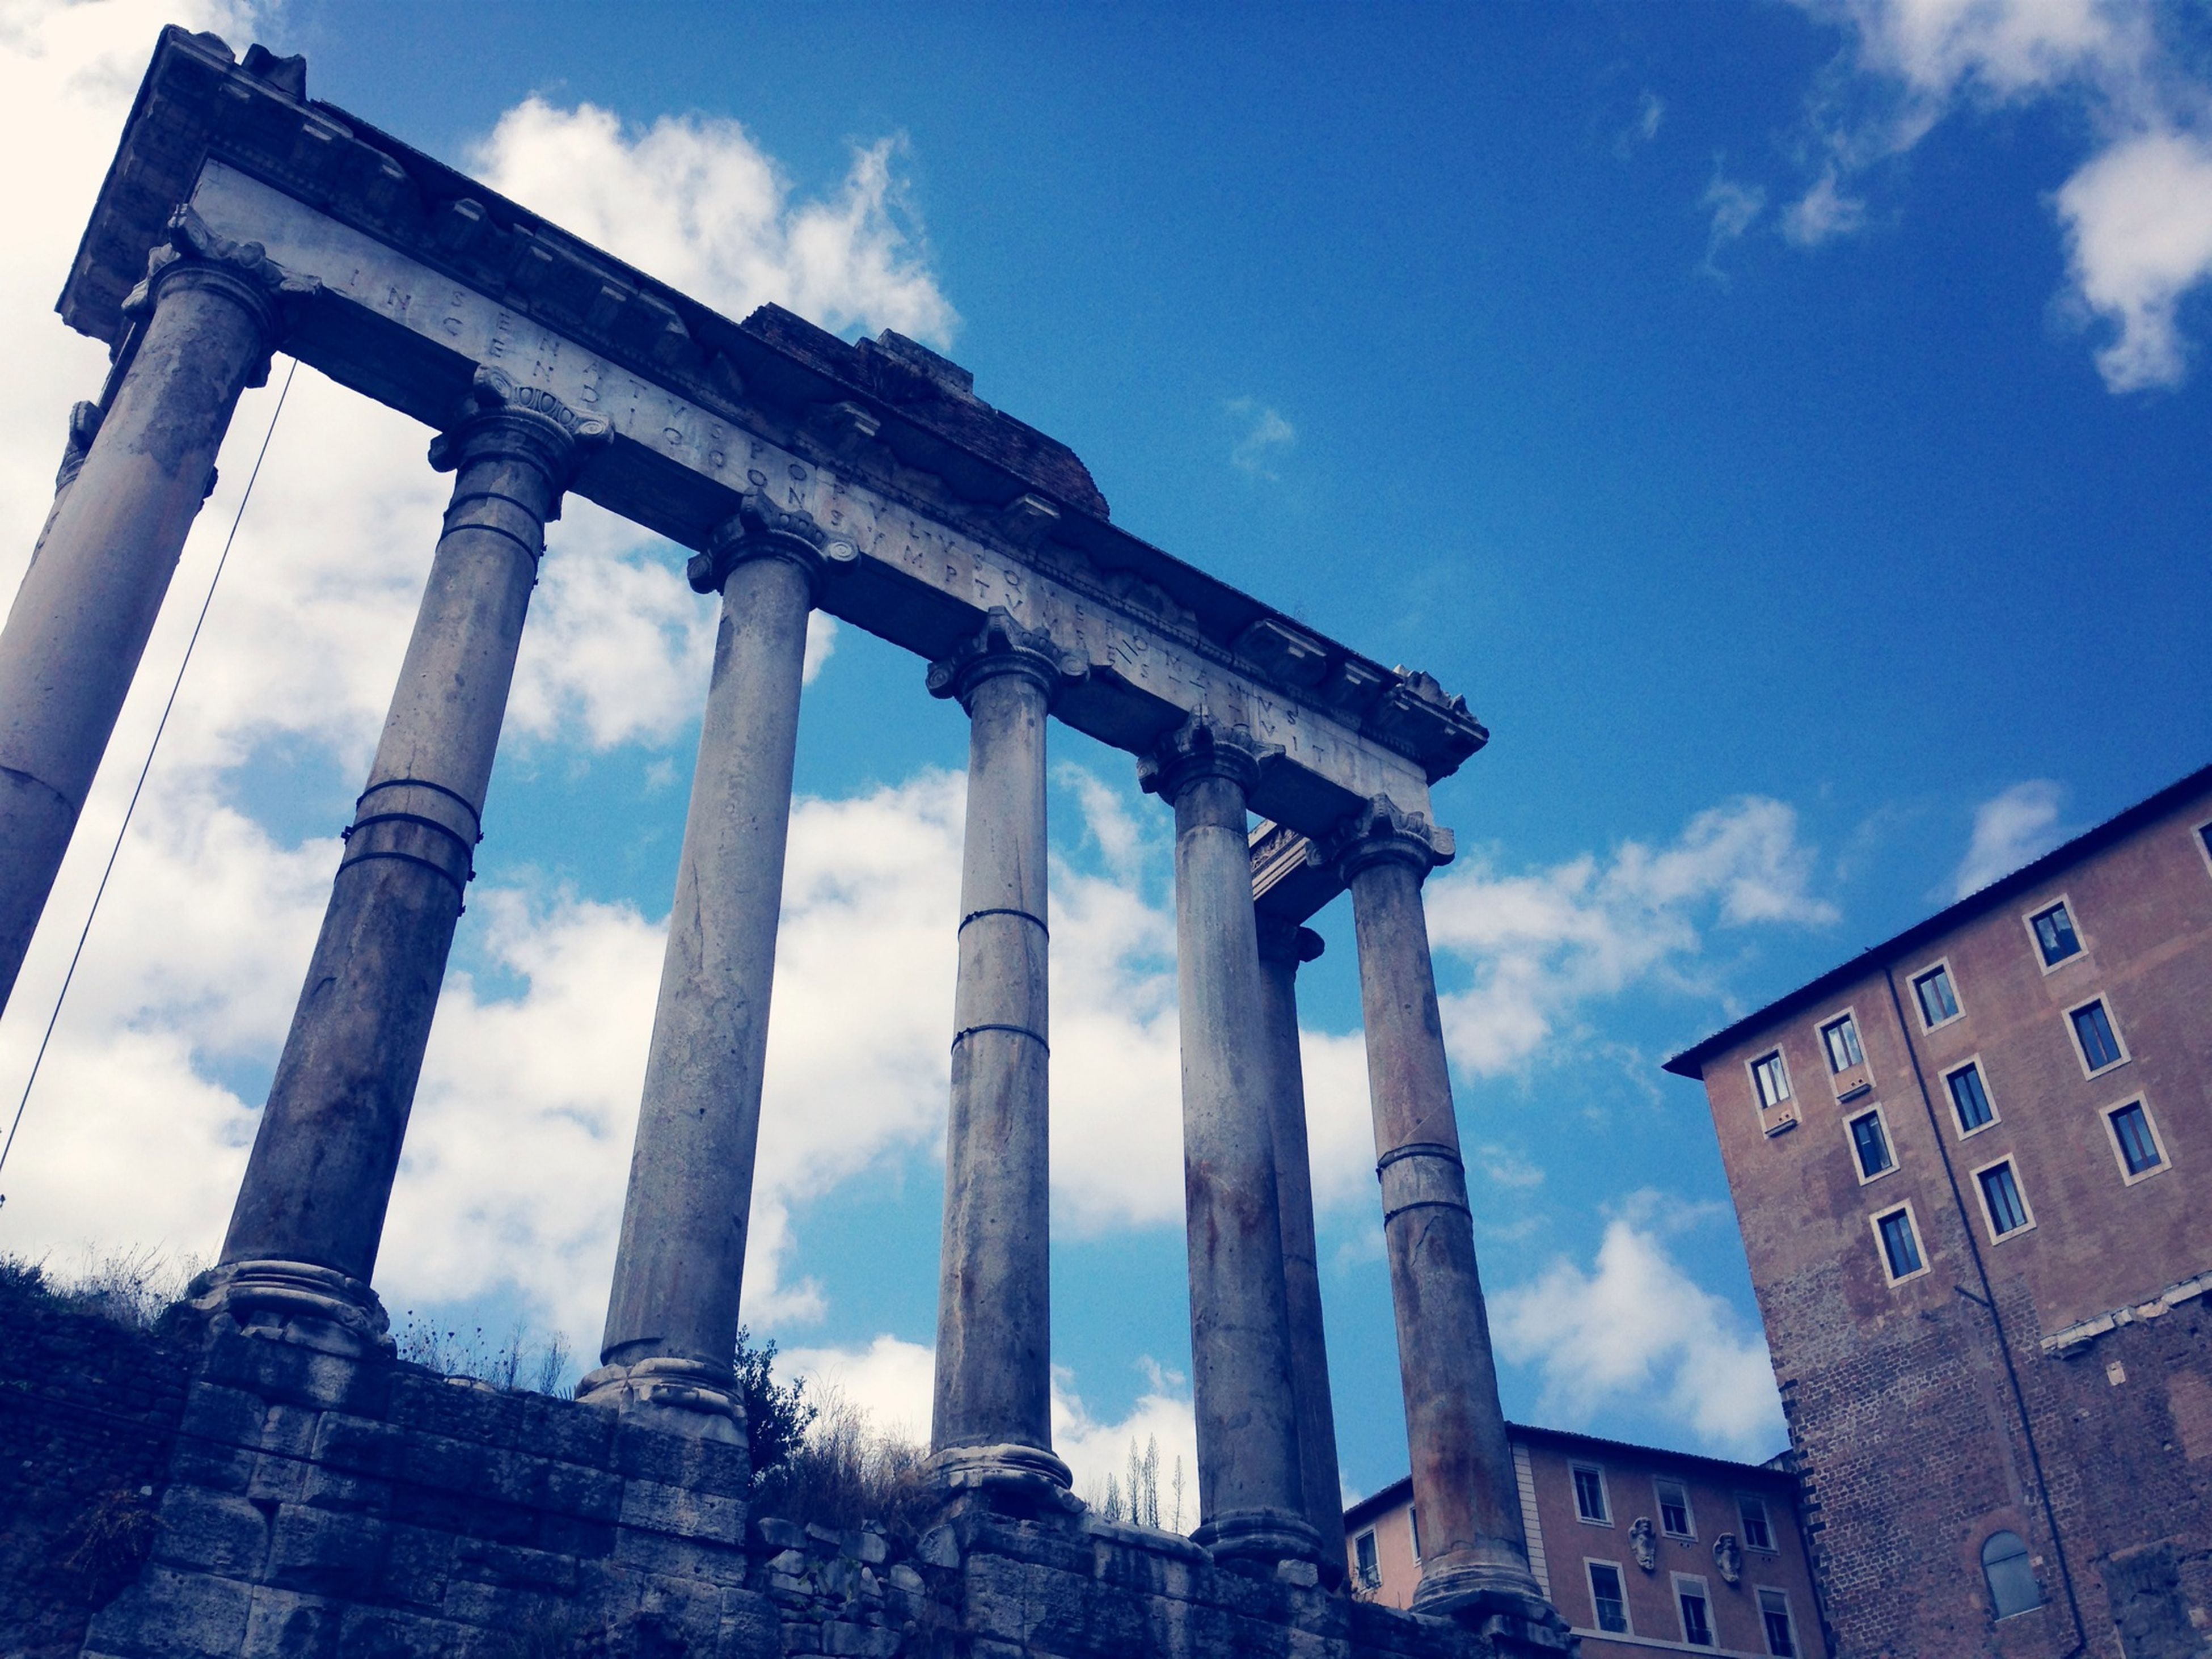 architecture, built structure, building exterior, history, low angle view, sky, famous place, travel destinations, tourism, cloud - sky, travel, international landmark, architectural column, capital cities, the past, old, ancient, column, old ruin, city